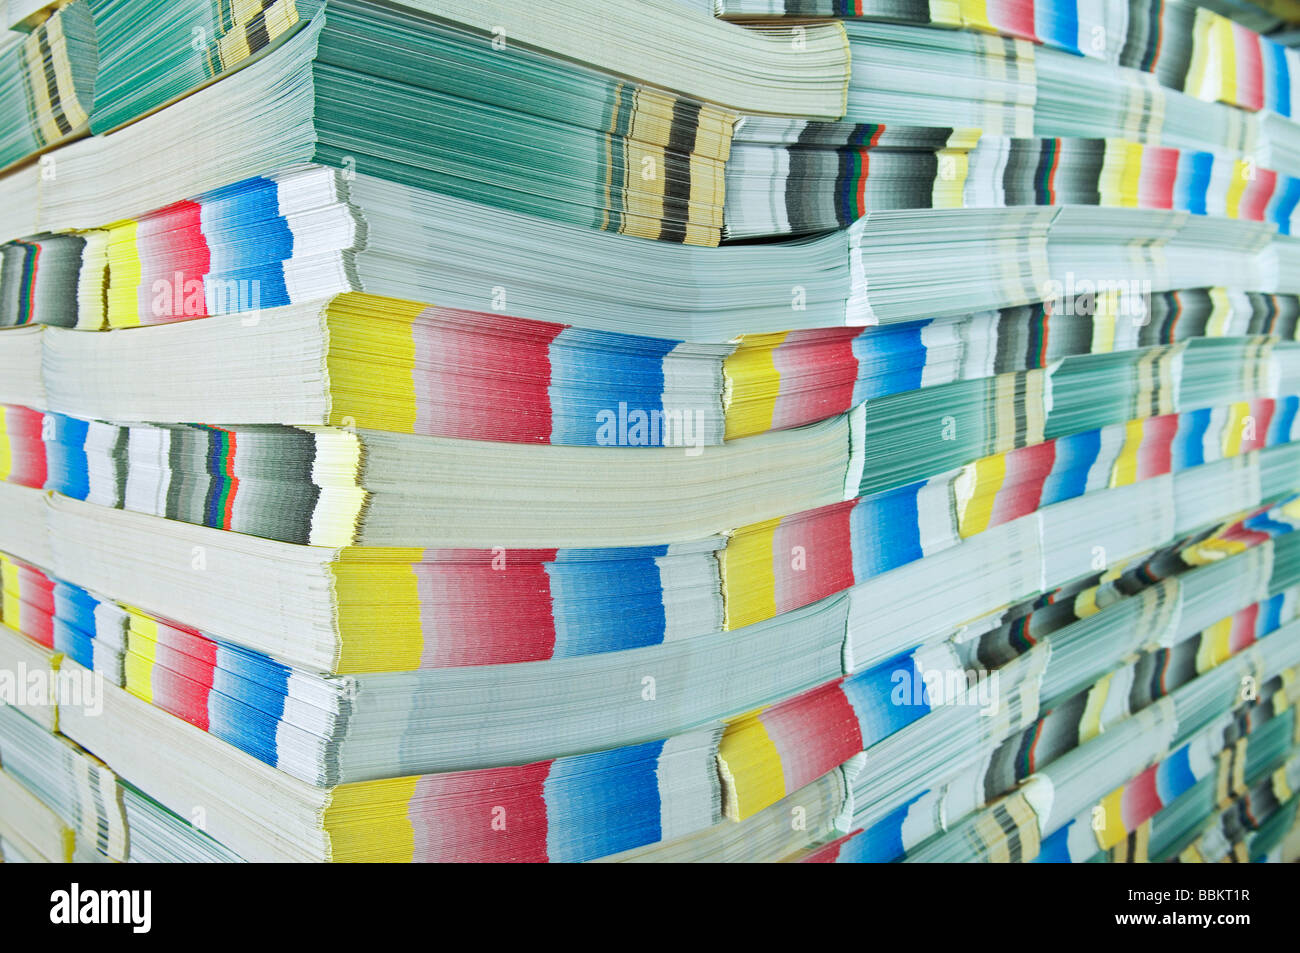 Printing plant, stacked brochures waiting to be processed, detail - Stock Image